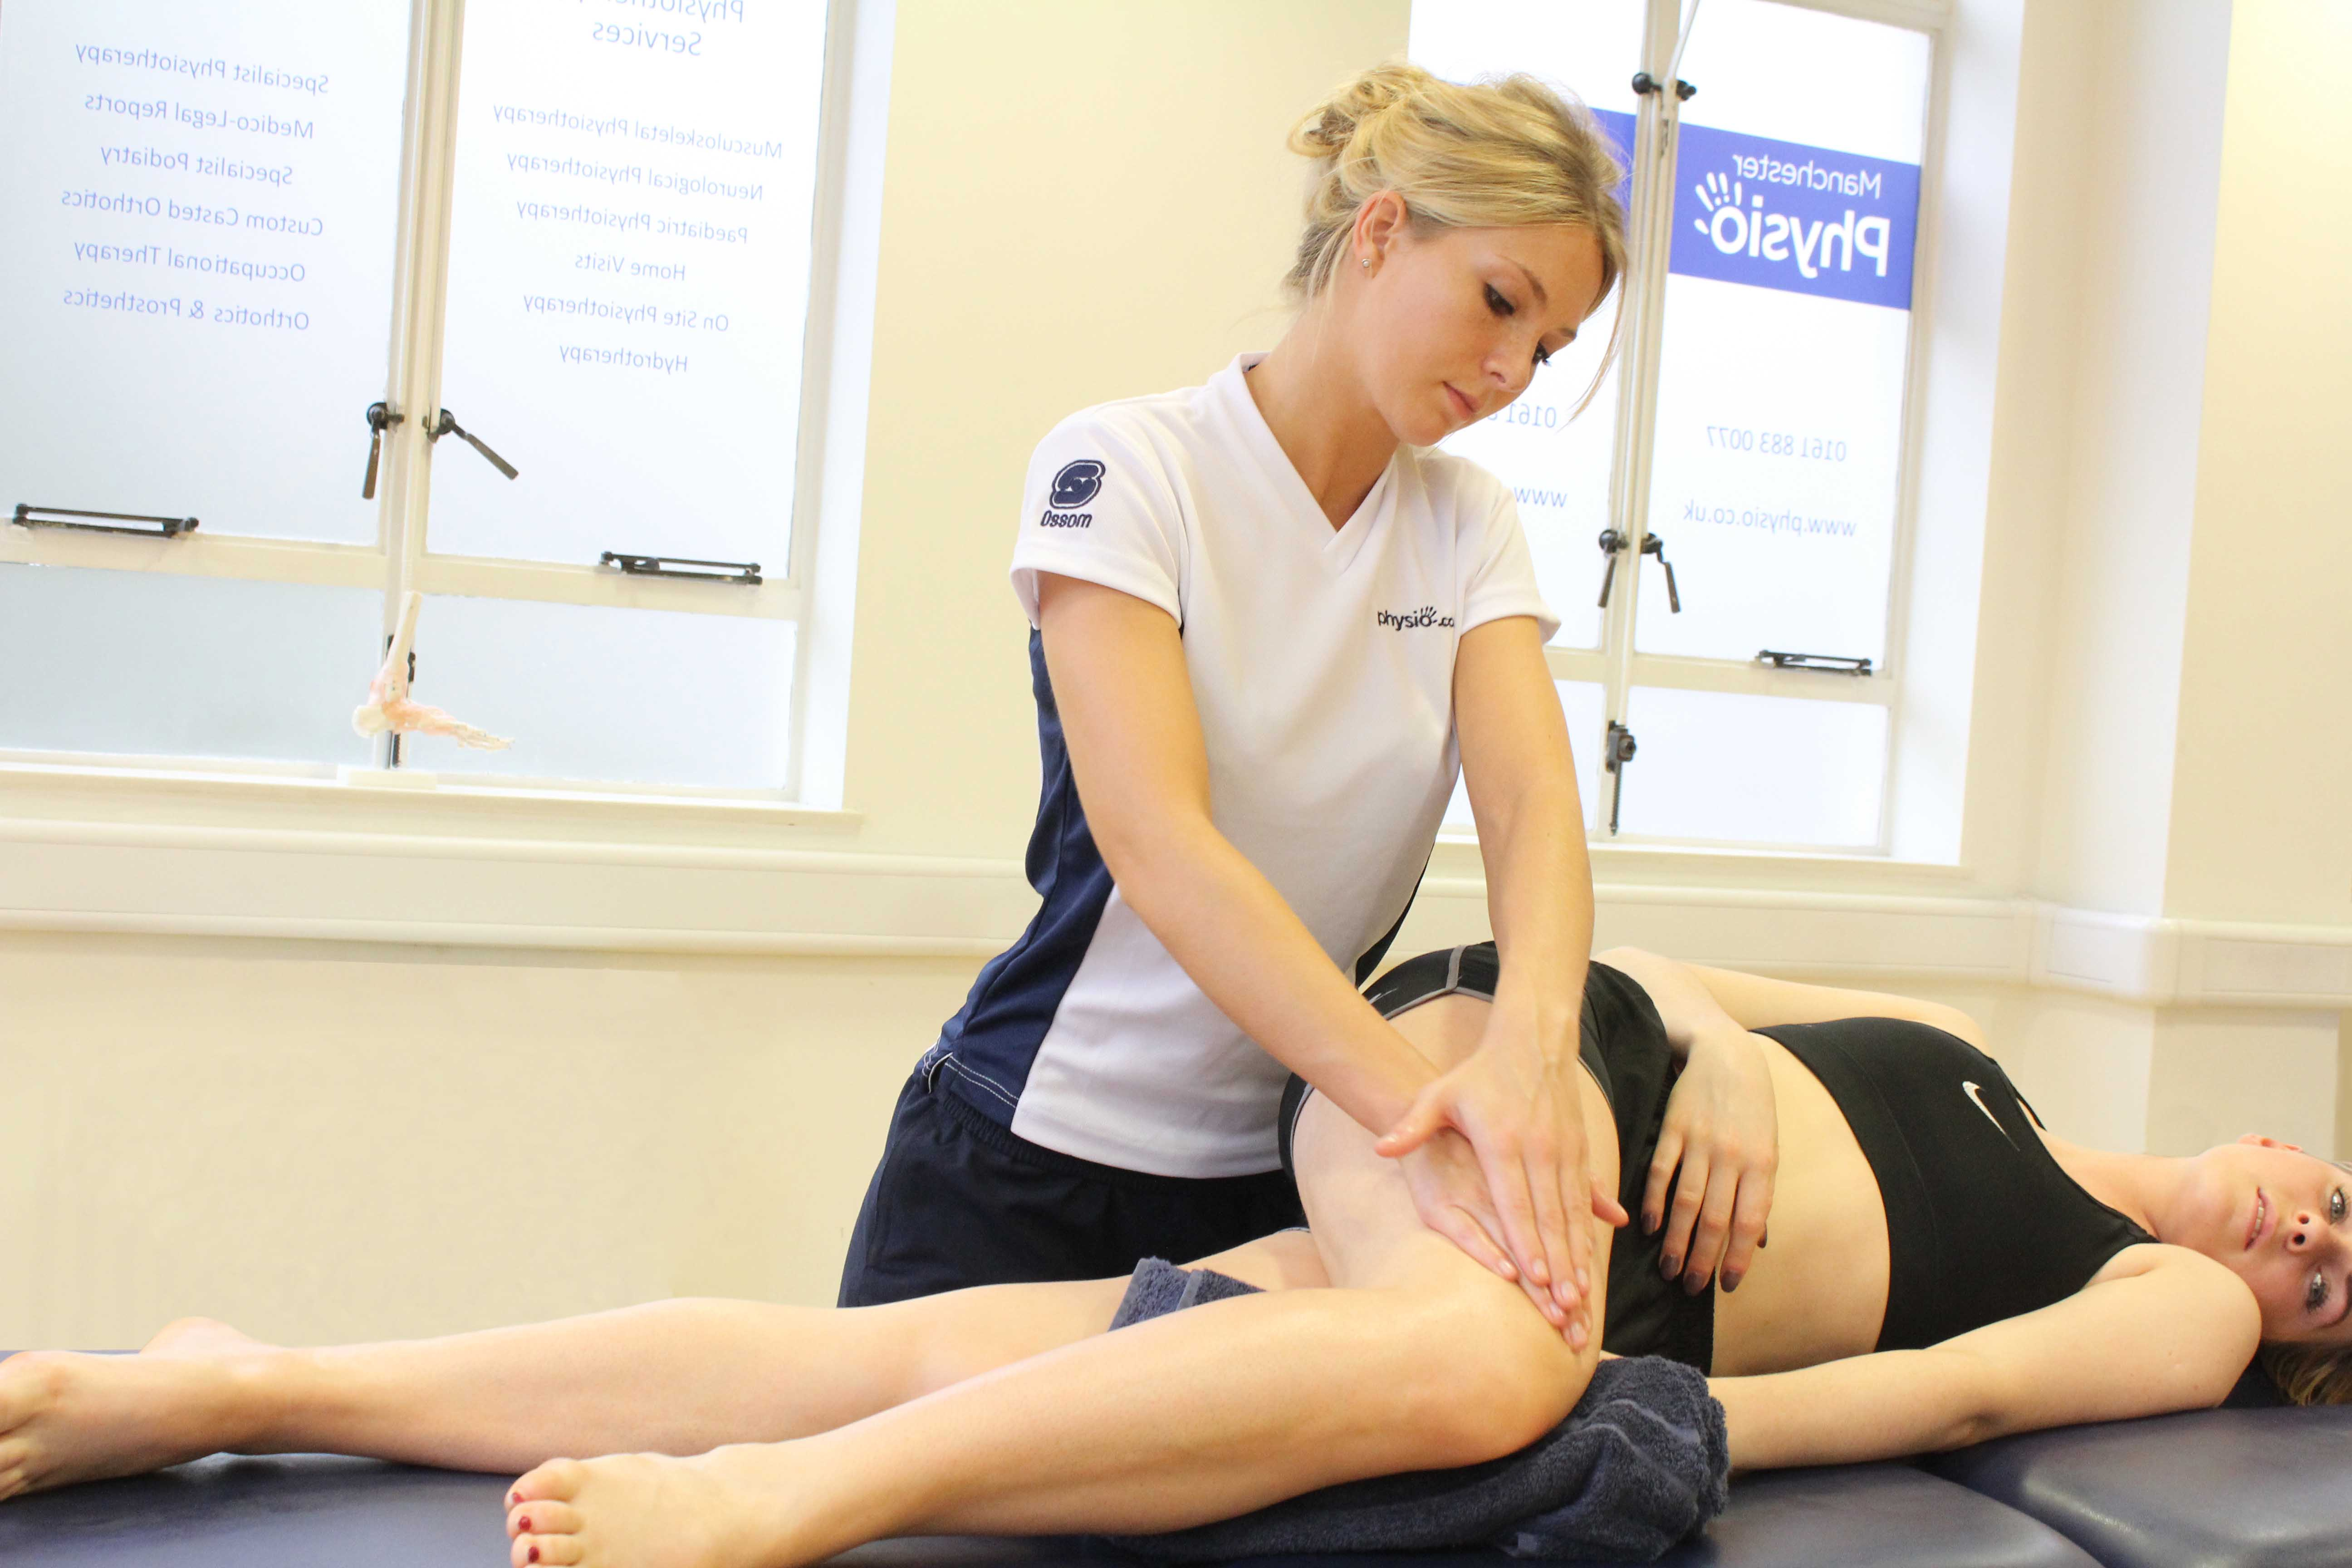 Soft tissue massage of the connective tissue around the patella and knee joint